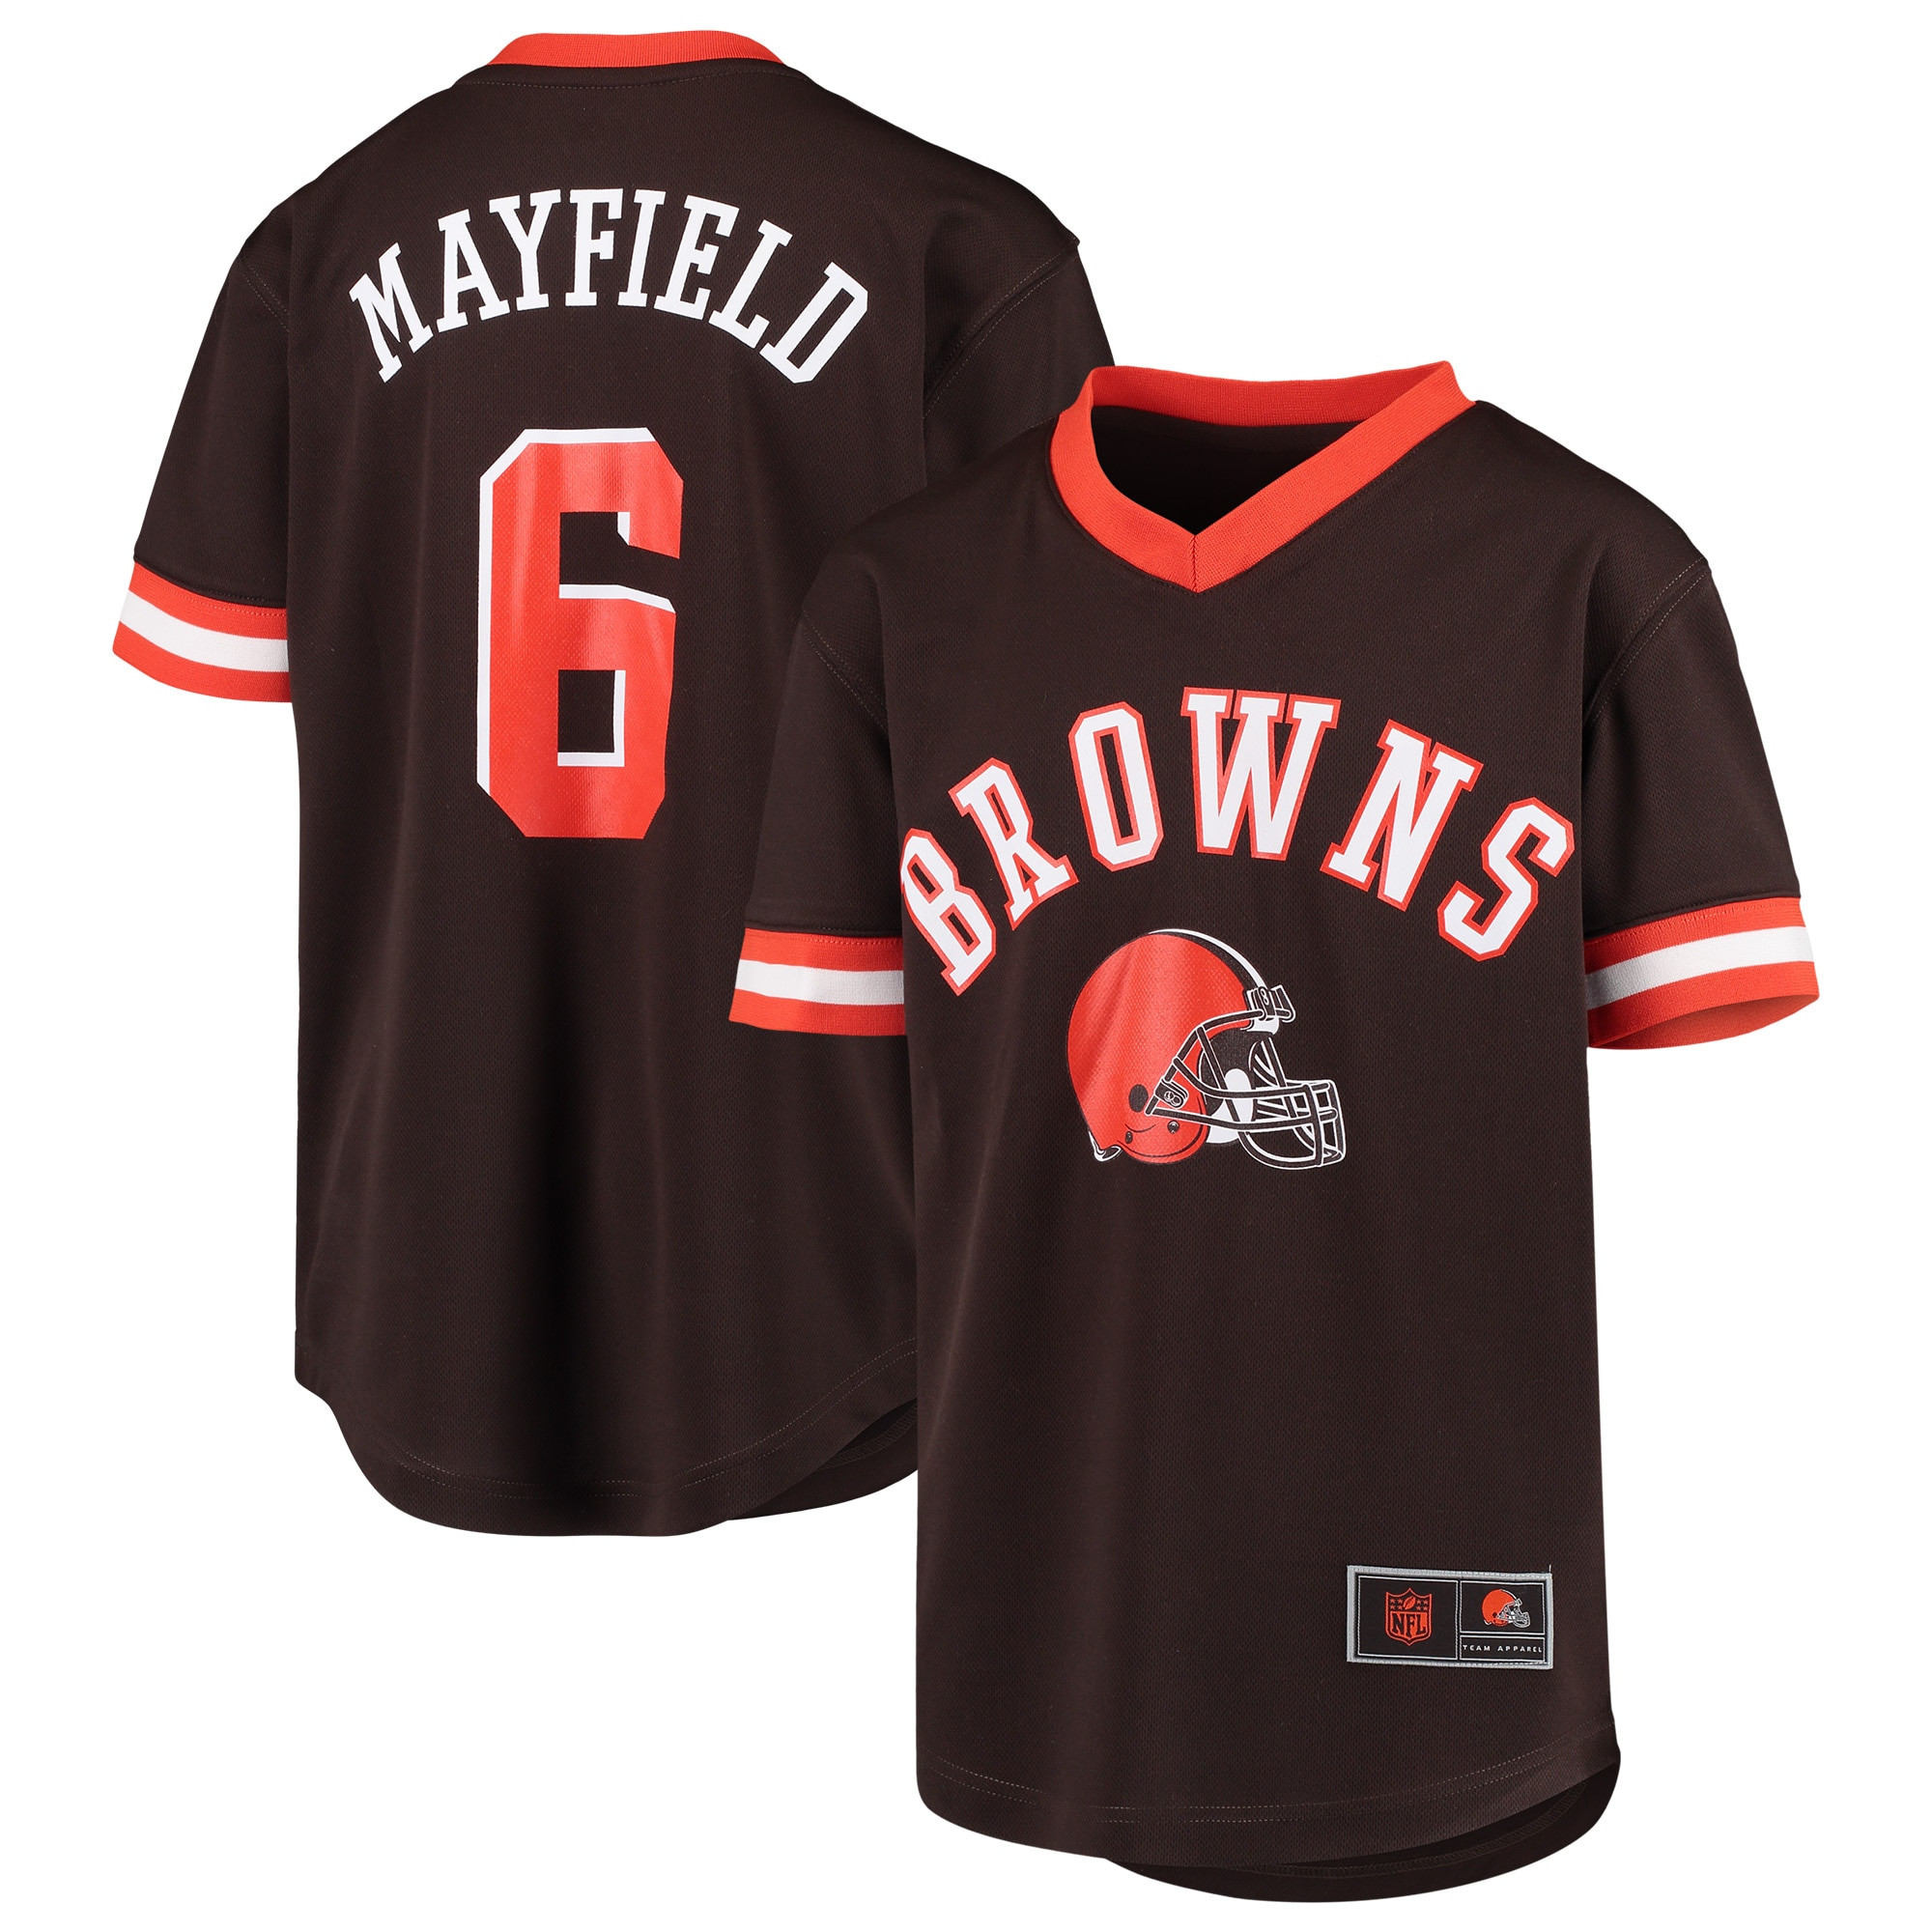 Baker Mayfield Cleveland Browns Youth Player Name & Number Fashion Mesh V-Neck Top - Brown